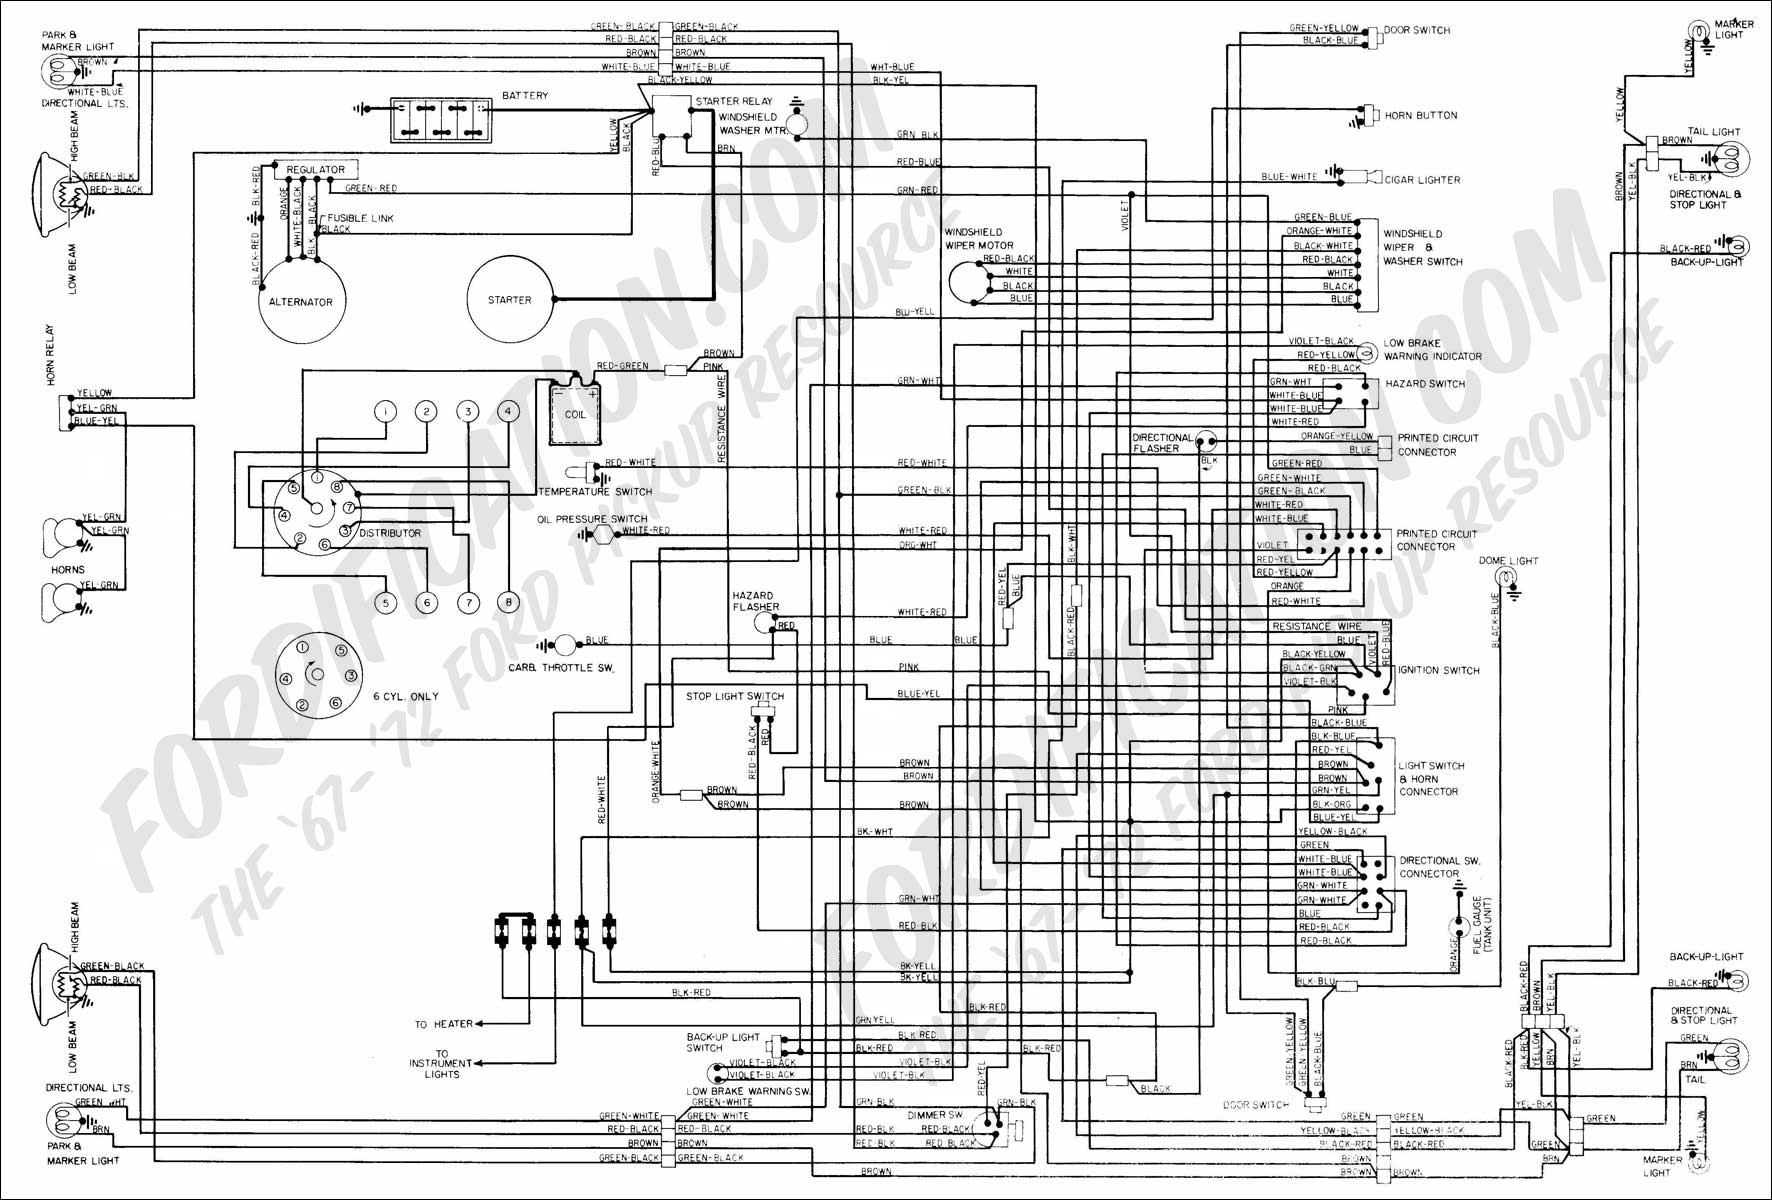 2005 Ford F 150 Wiring Schematic 34 1 Block And Diagrams 85 250 Diagram Truck Technical Drawings Schematics Section H Rh Fordification Com Headlight 99